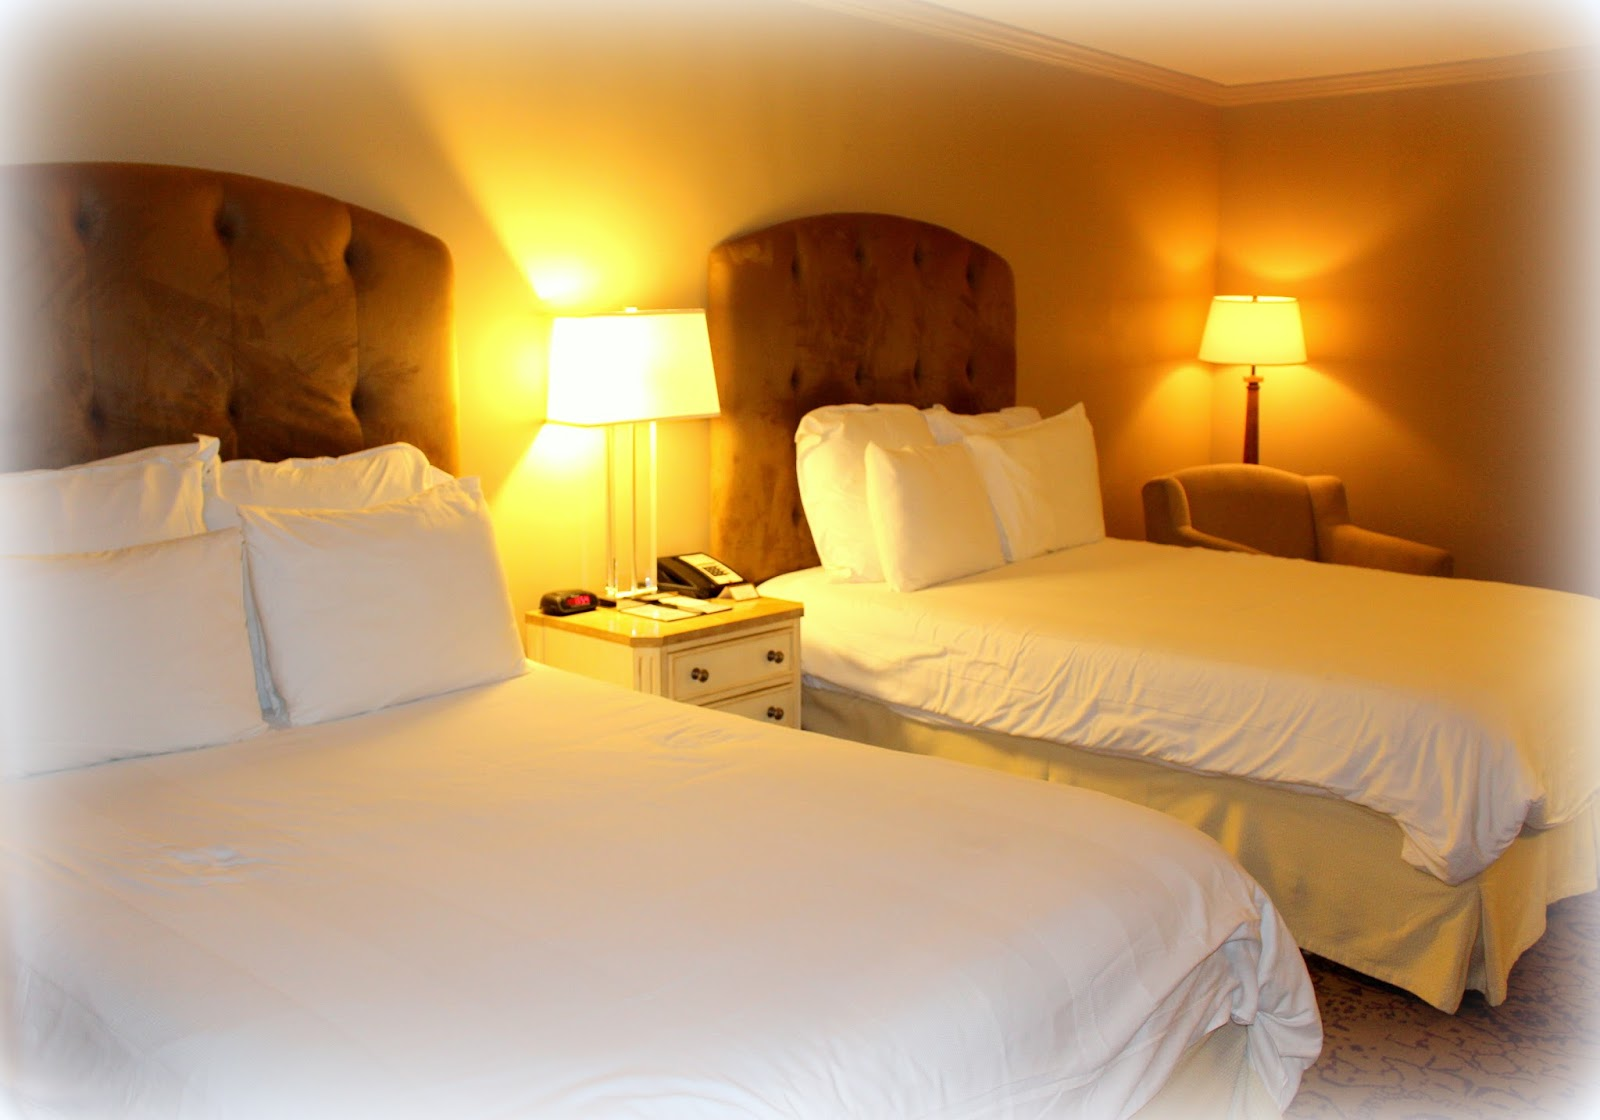 New Orleans Historic Hotel With Modern Amenities